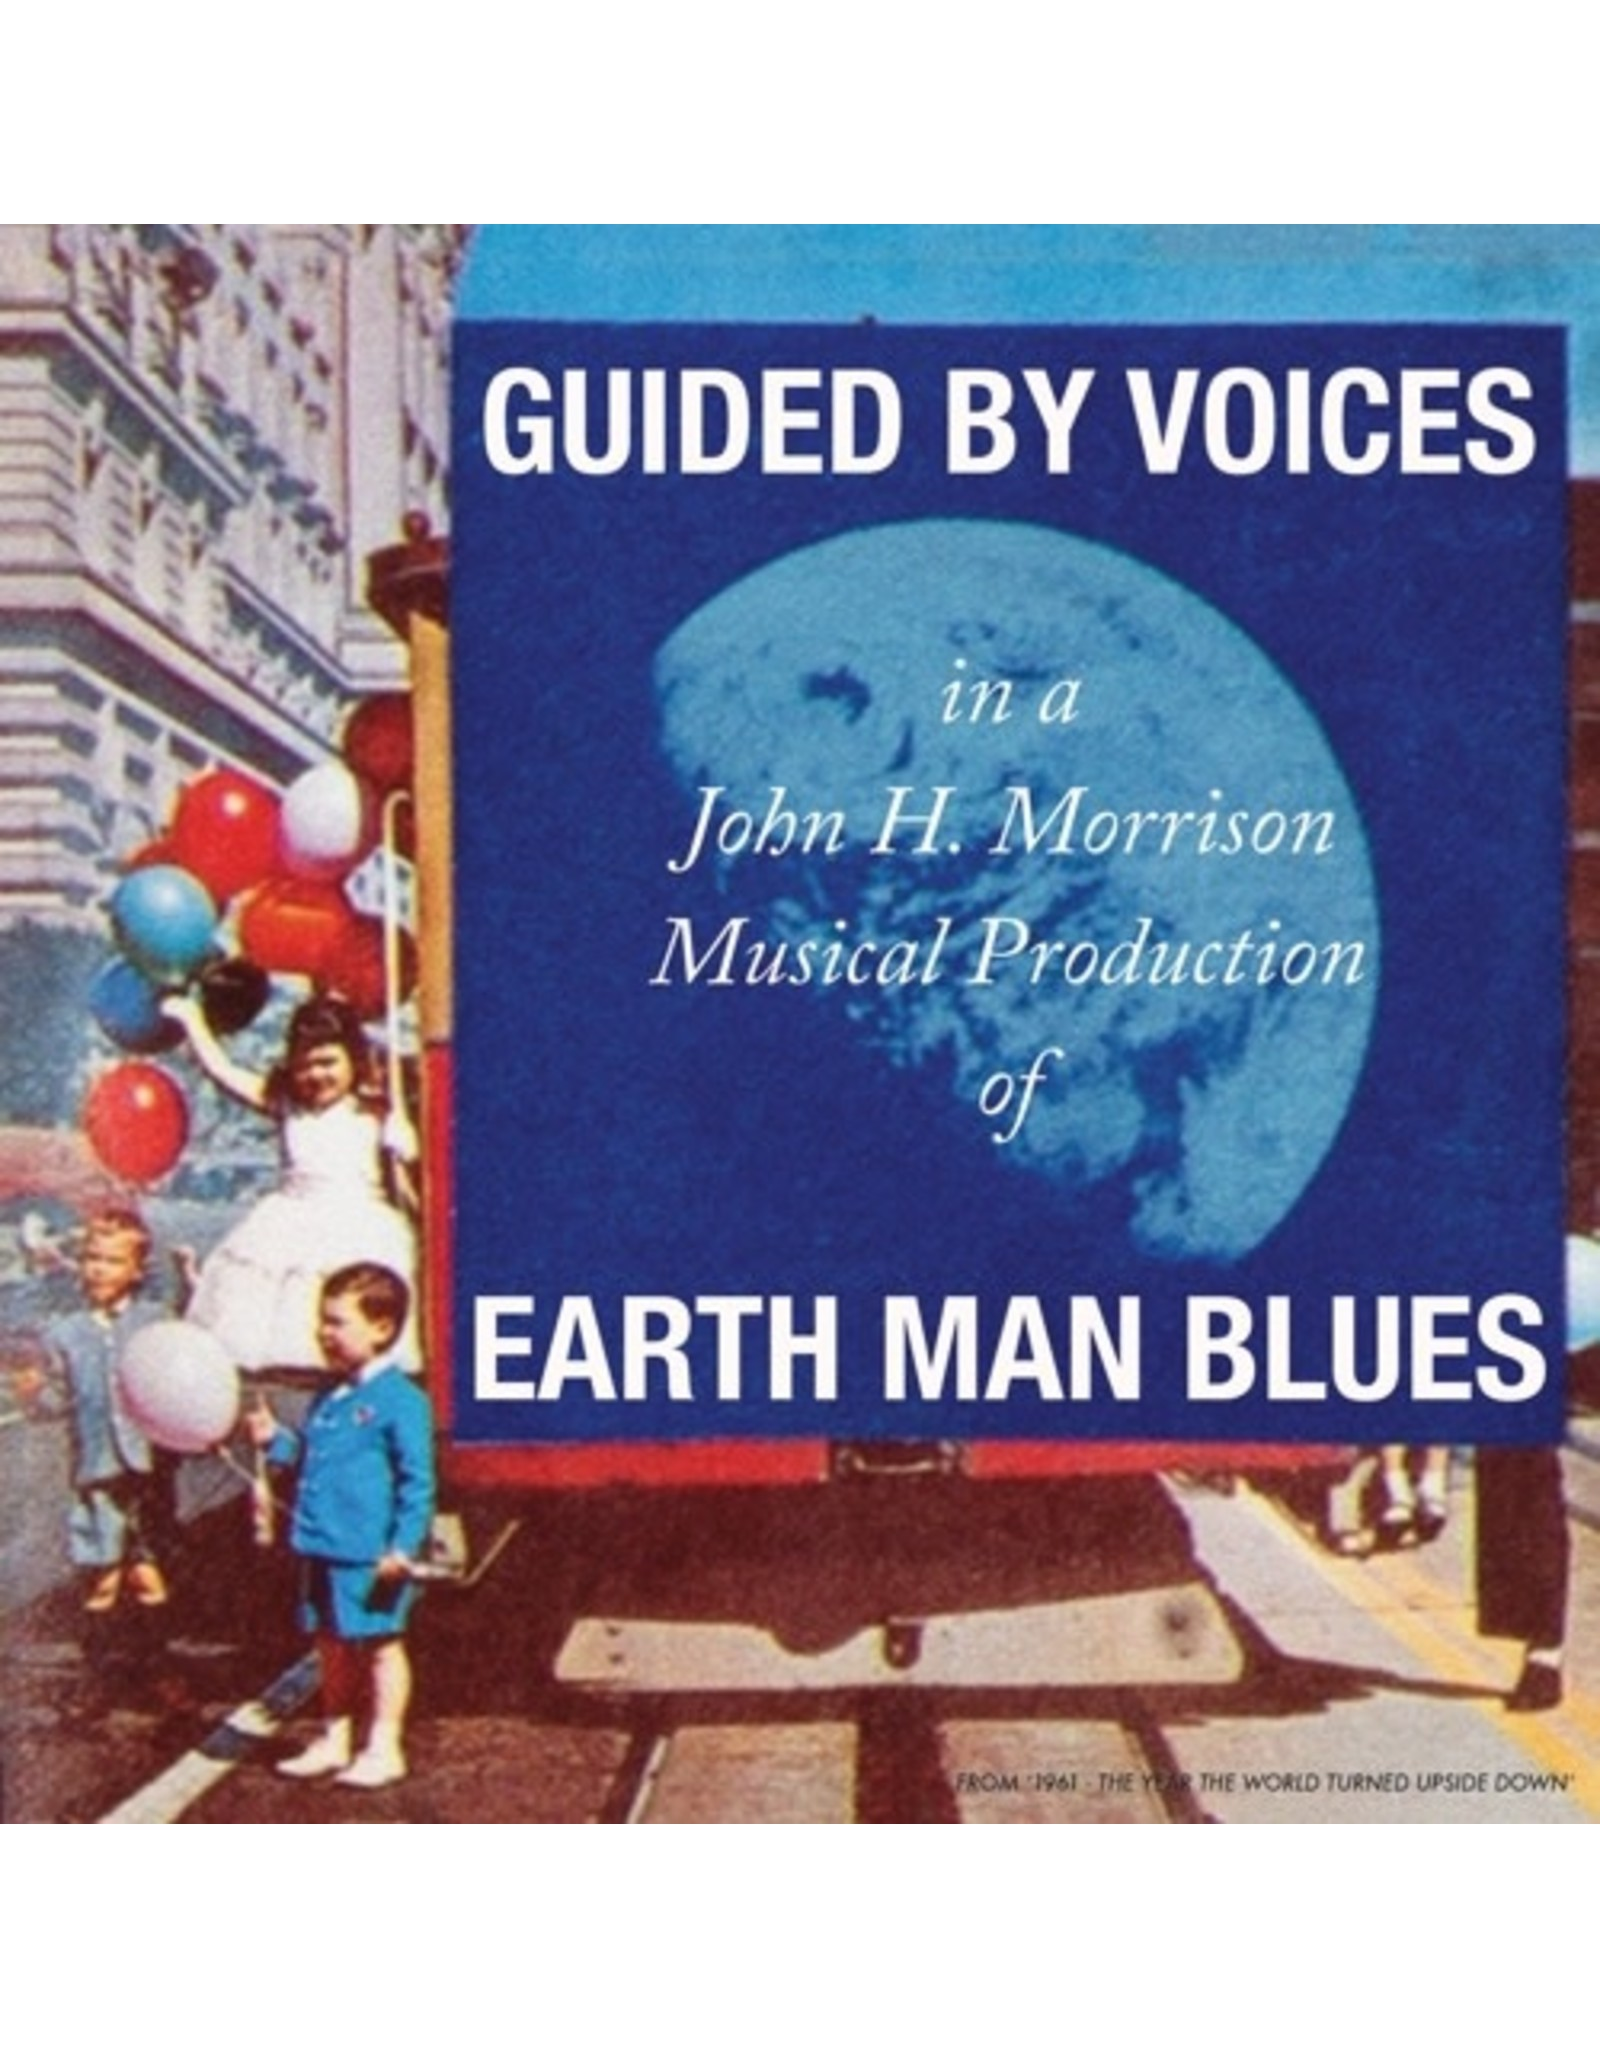 New Vinyl Guided By Voices - Earth Man Blues LP